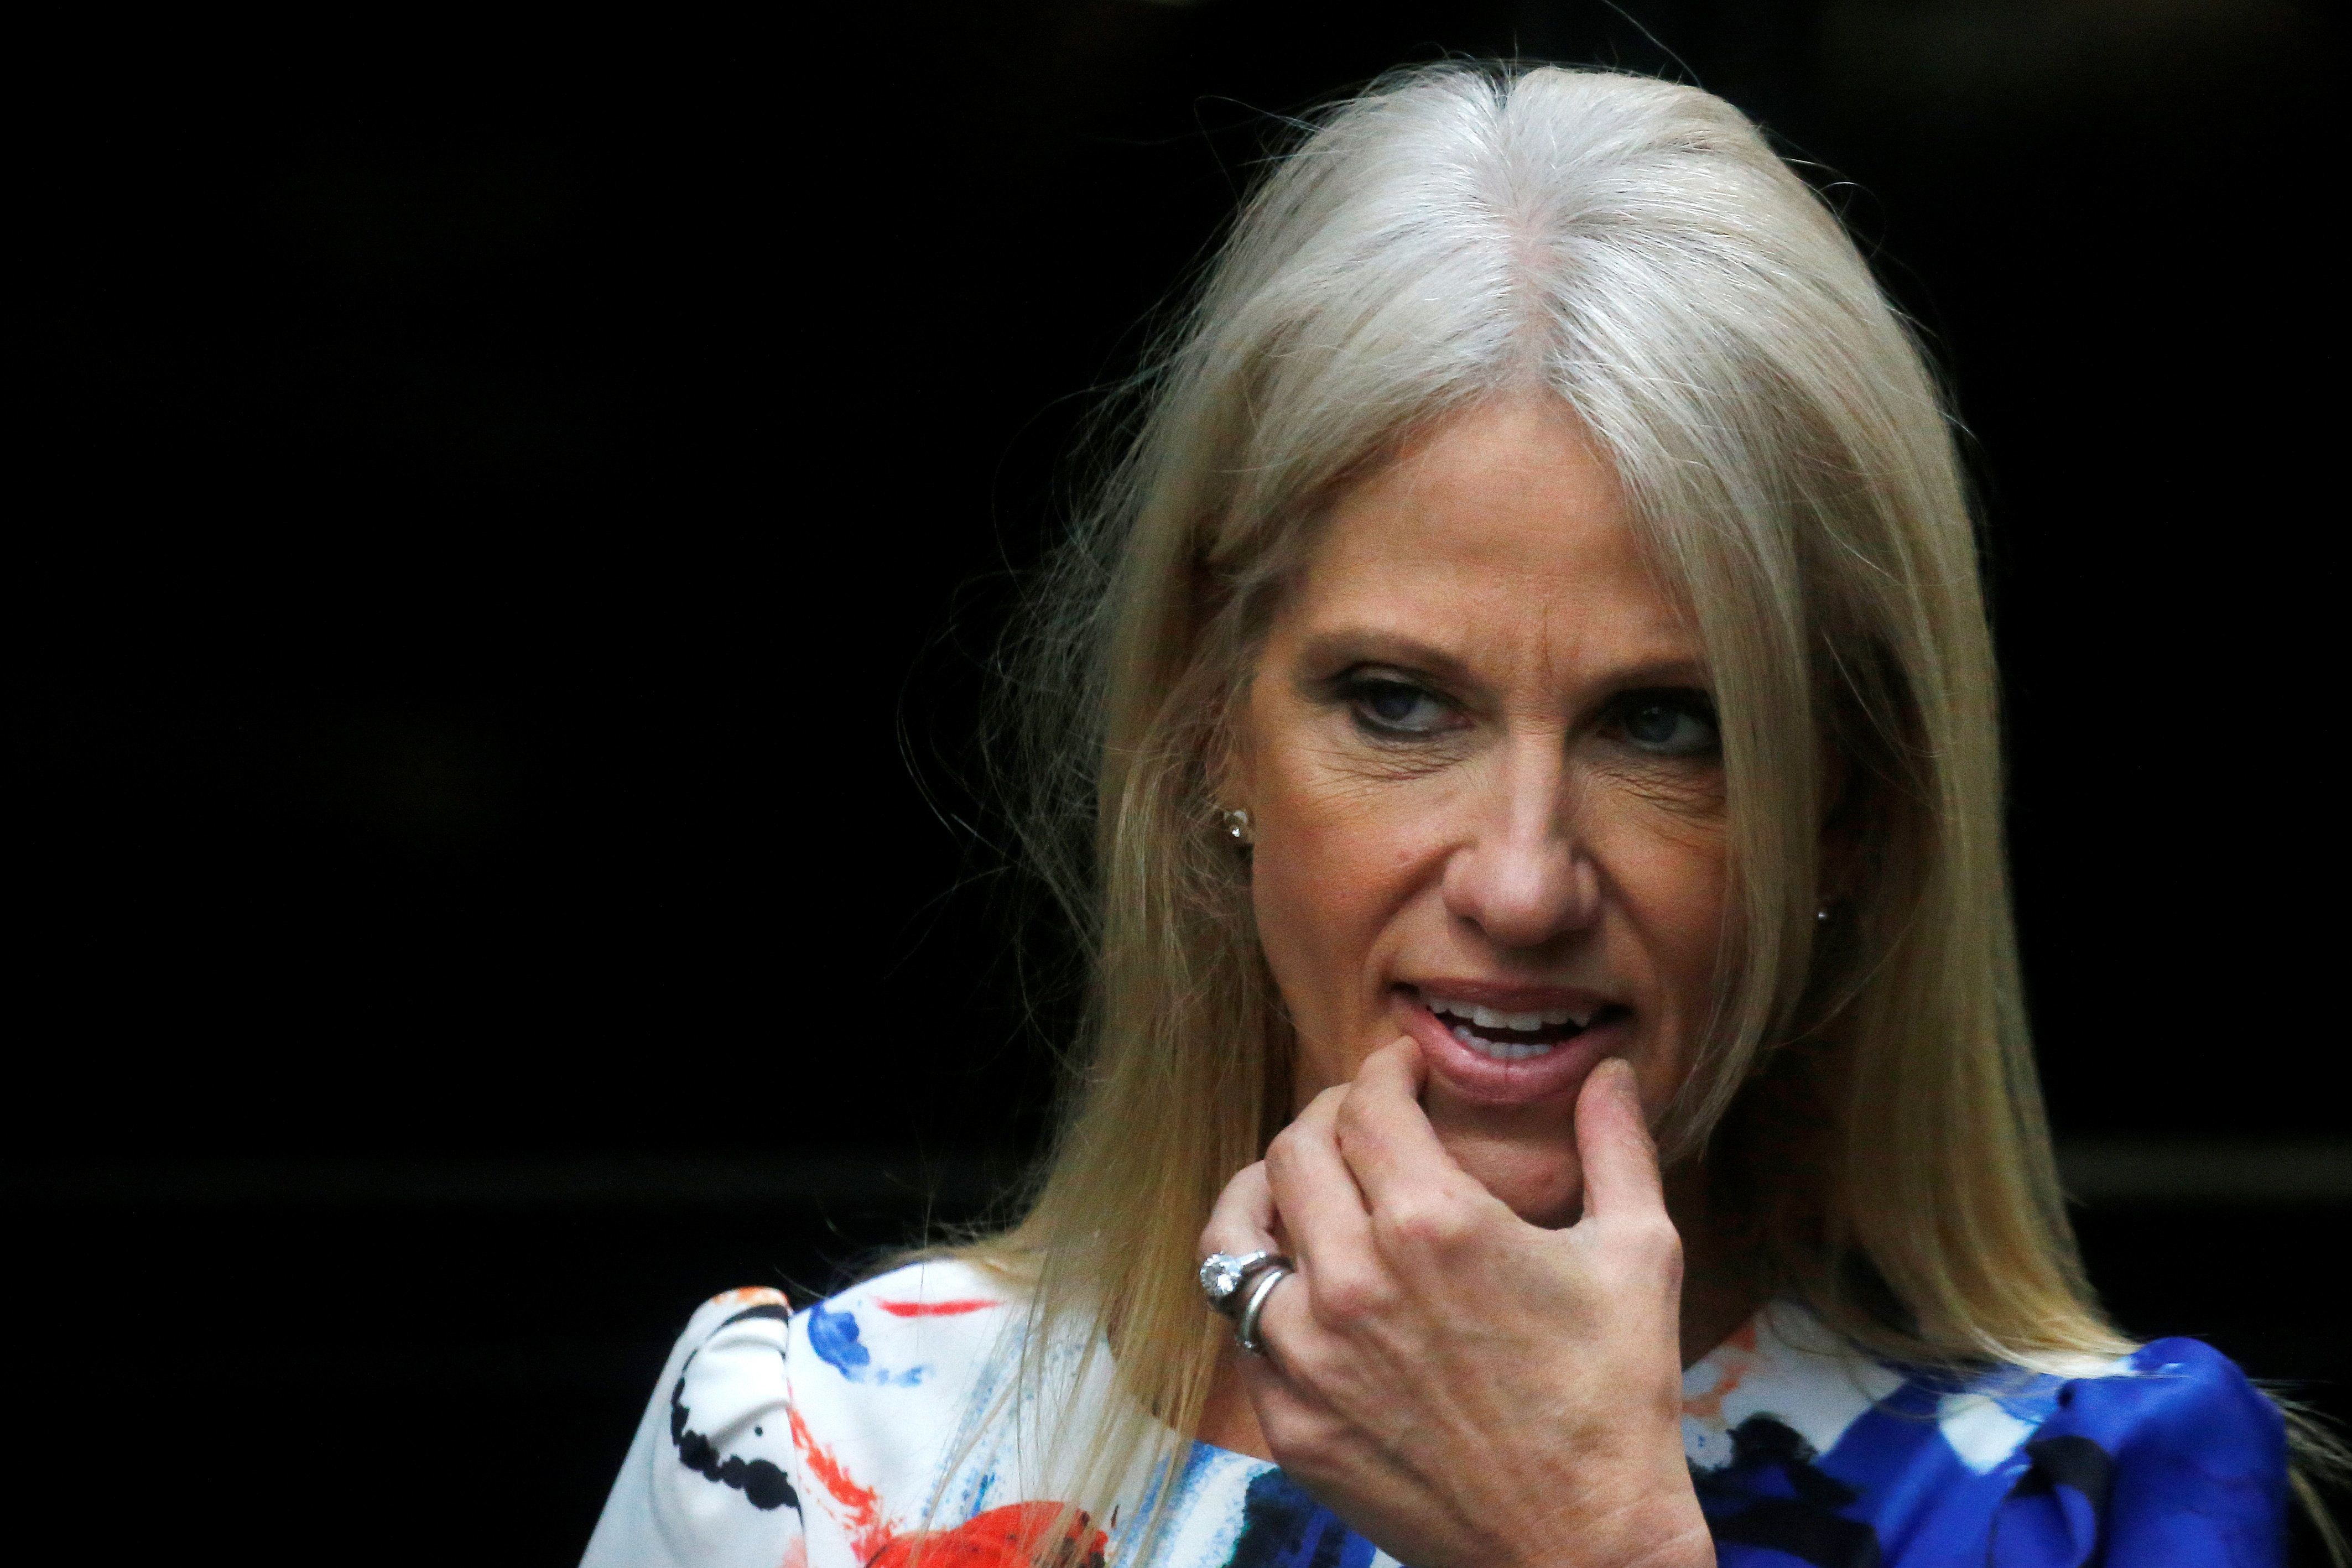 Kellyanne Conway finally admitted the truth. President Trump's approval numbers are